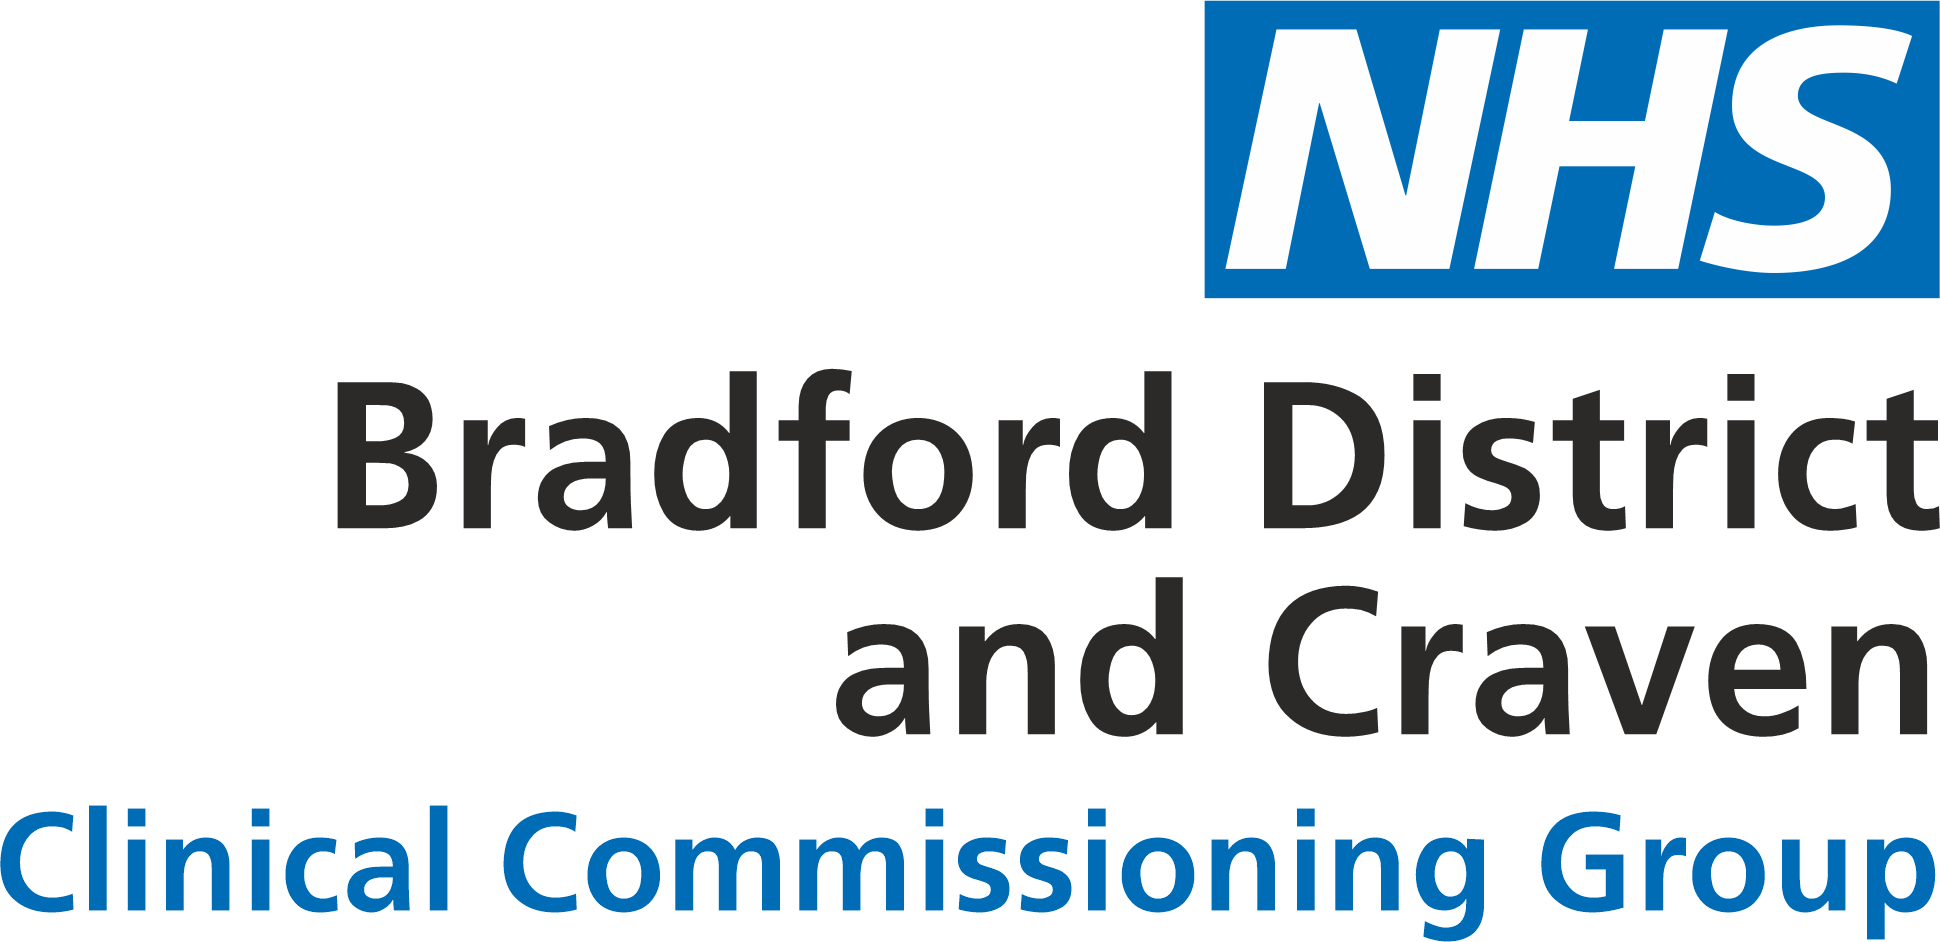 Bradford District and Craven Clinical Commissioning Group logo